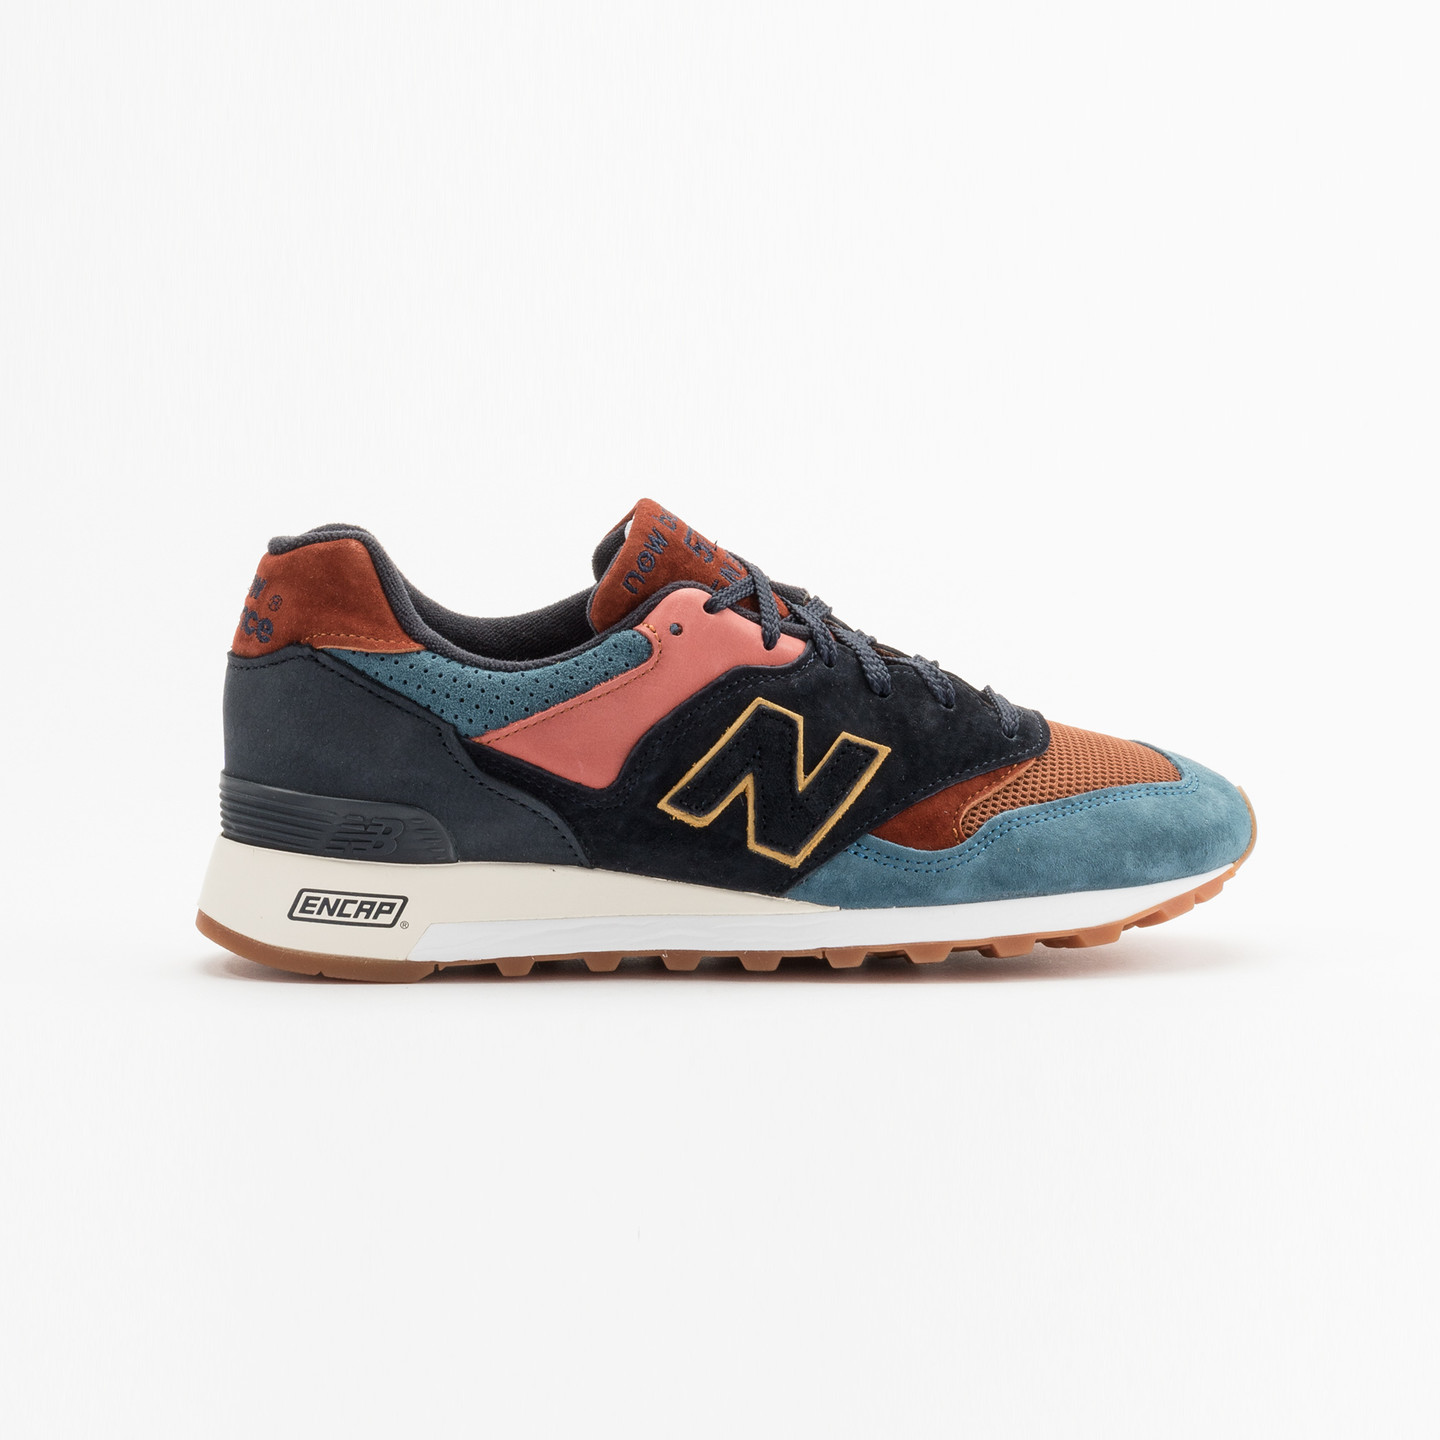 New Balance M577 YP Made in UK 'Yard Pack' Multicolor M577YP